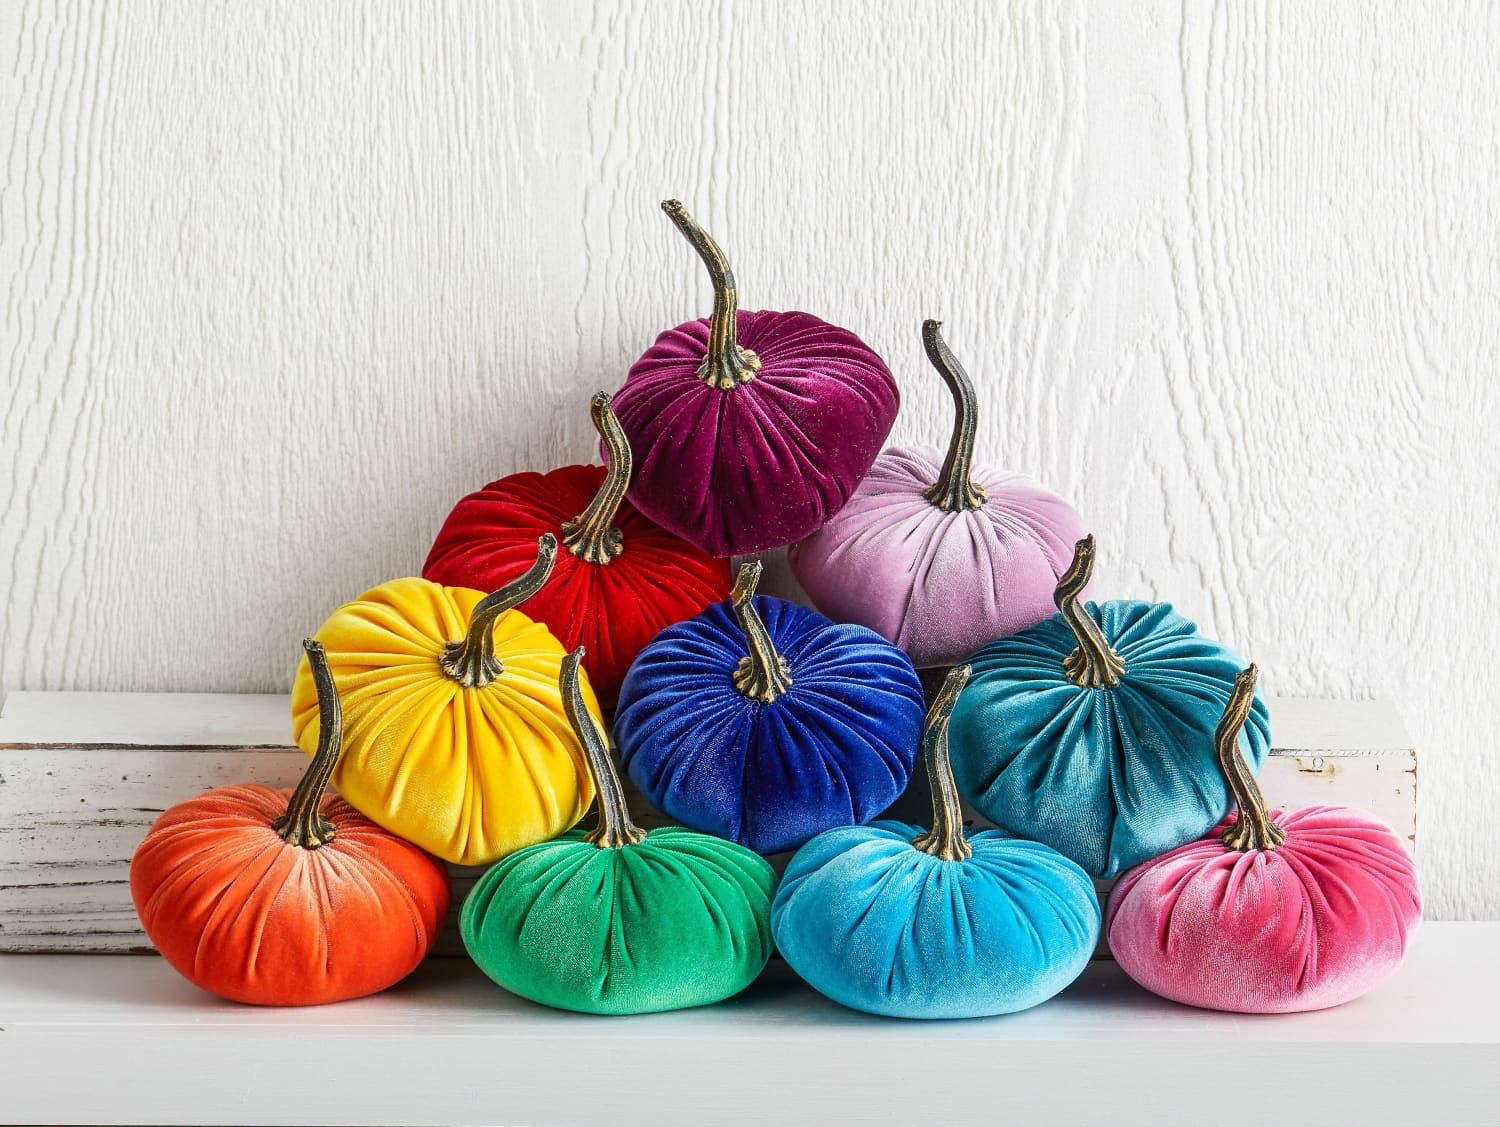 Forget Traditional Color Palettes—We're Decorating for Autumn with Etsy's Rainbow Fall Decor